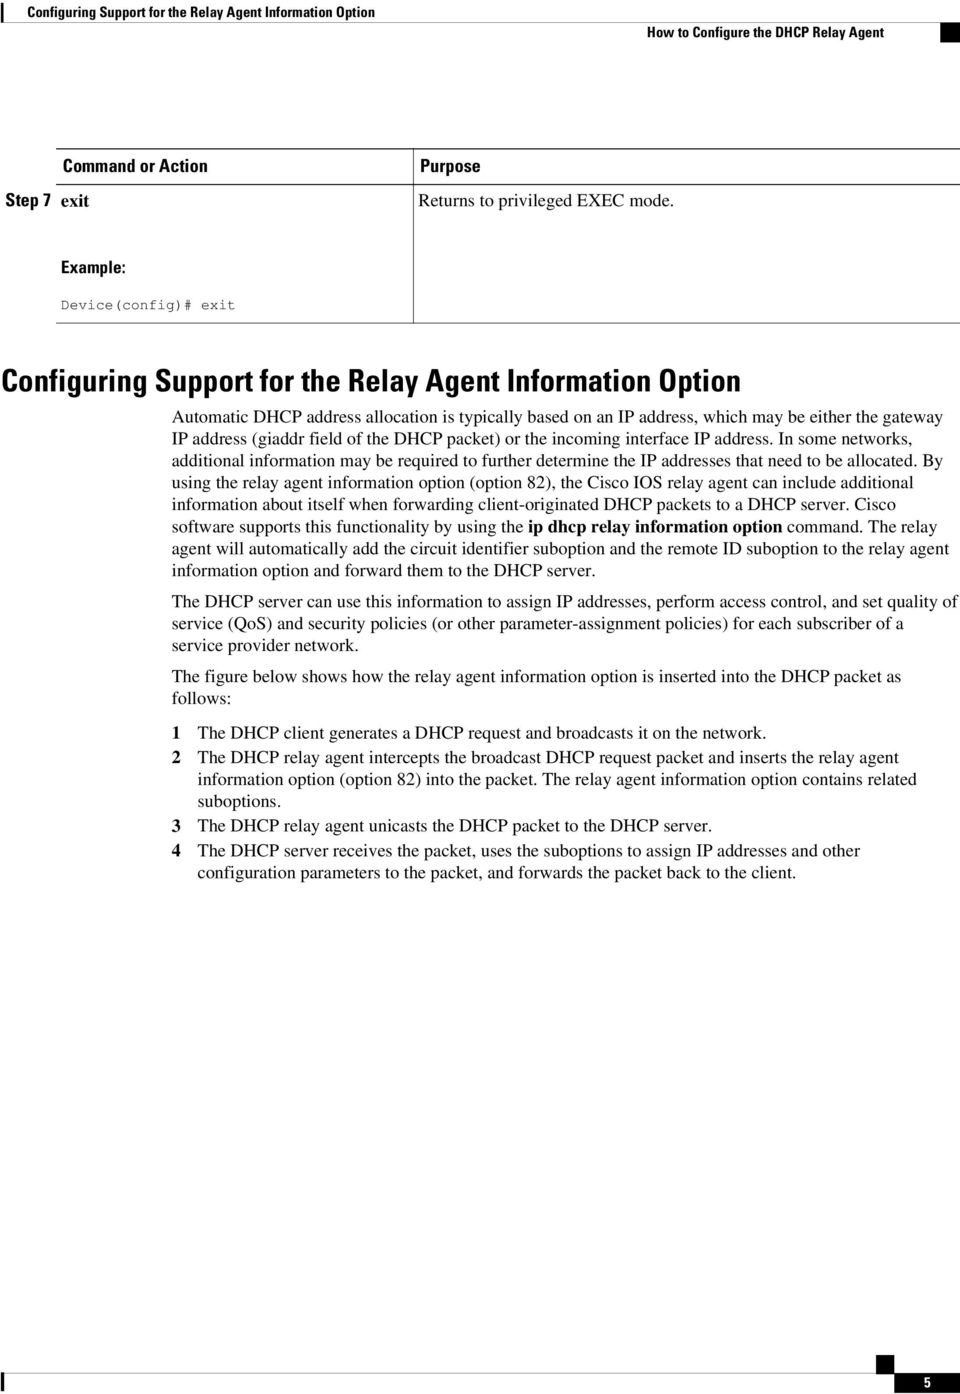 Configuring the Cisco IOS DHCP Relay Agent - PDF